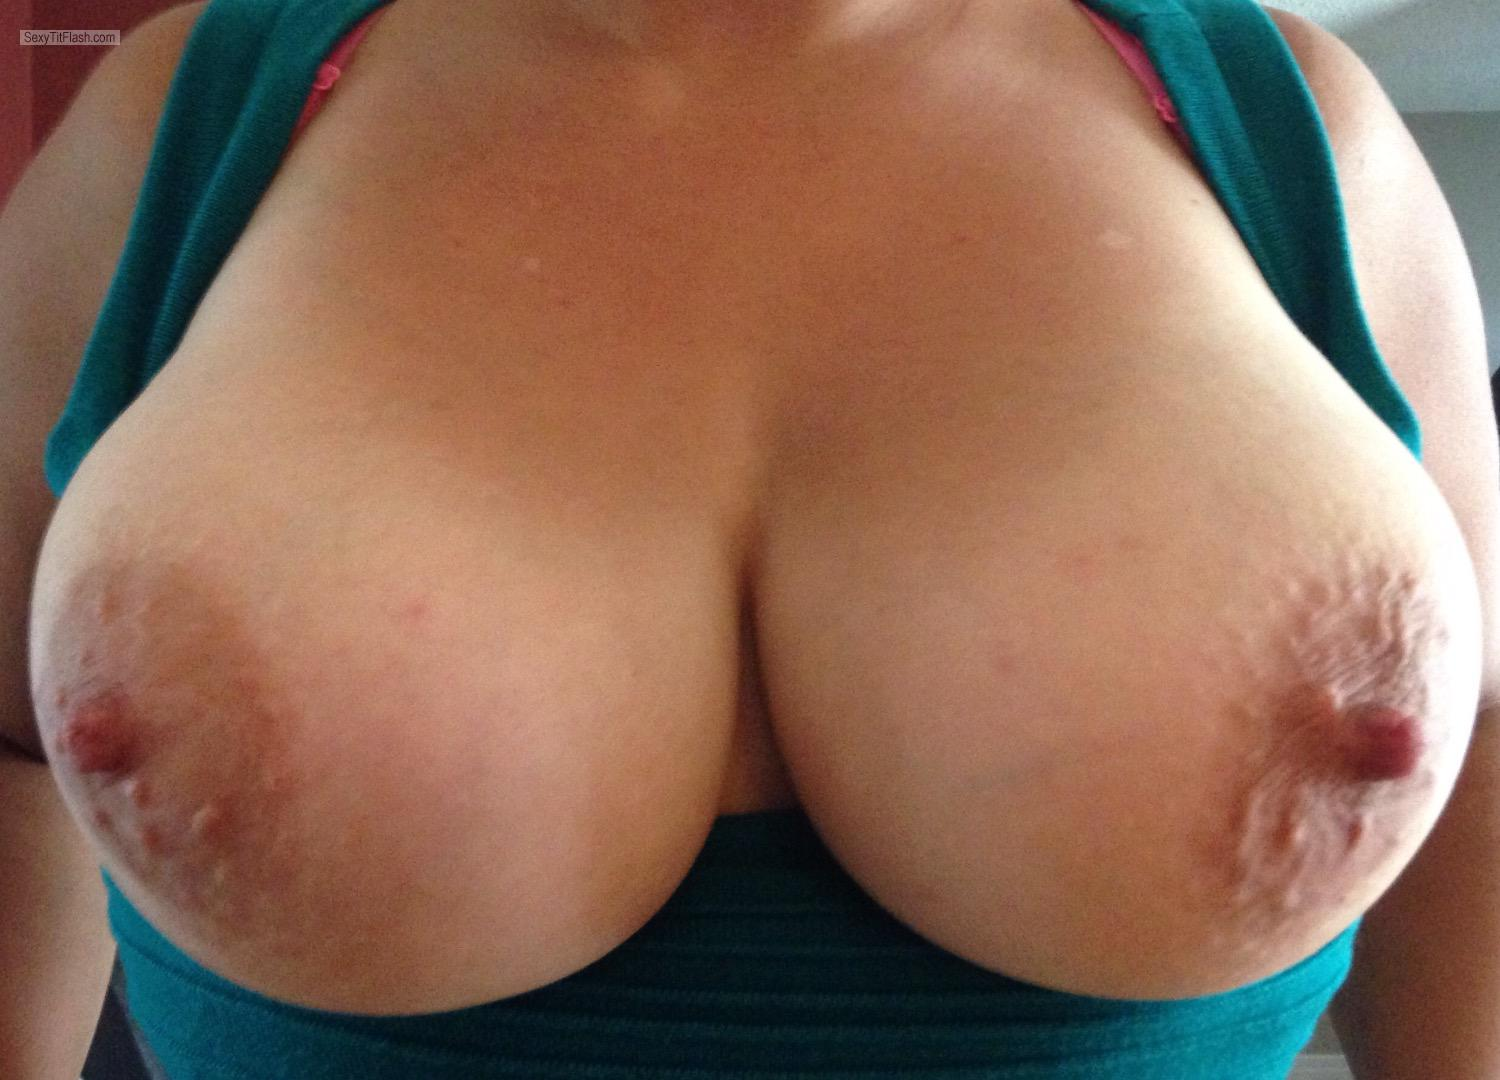 Tit Flash: My Very Big Tits - Youngnbusty from United States